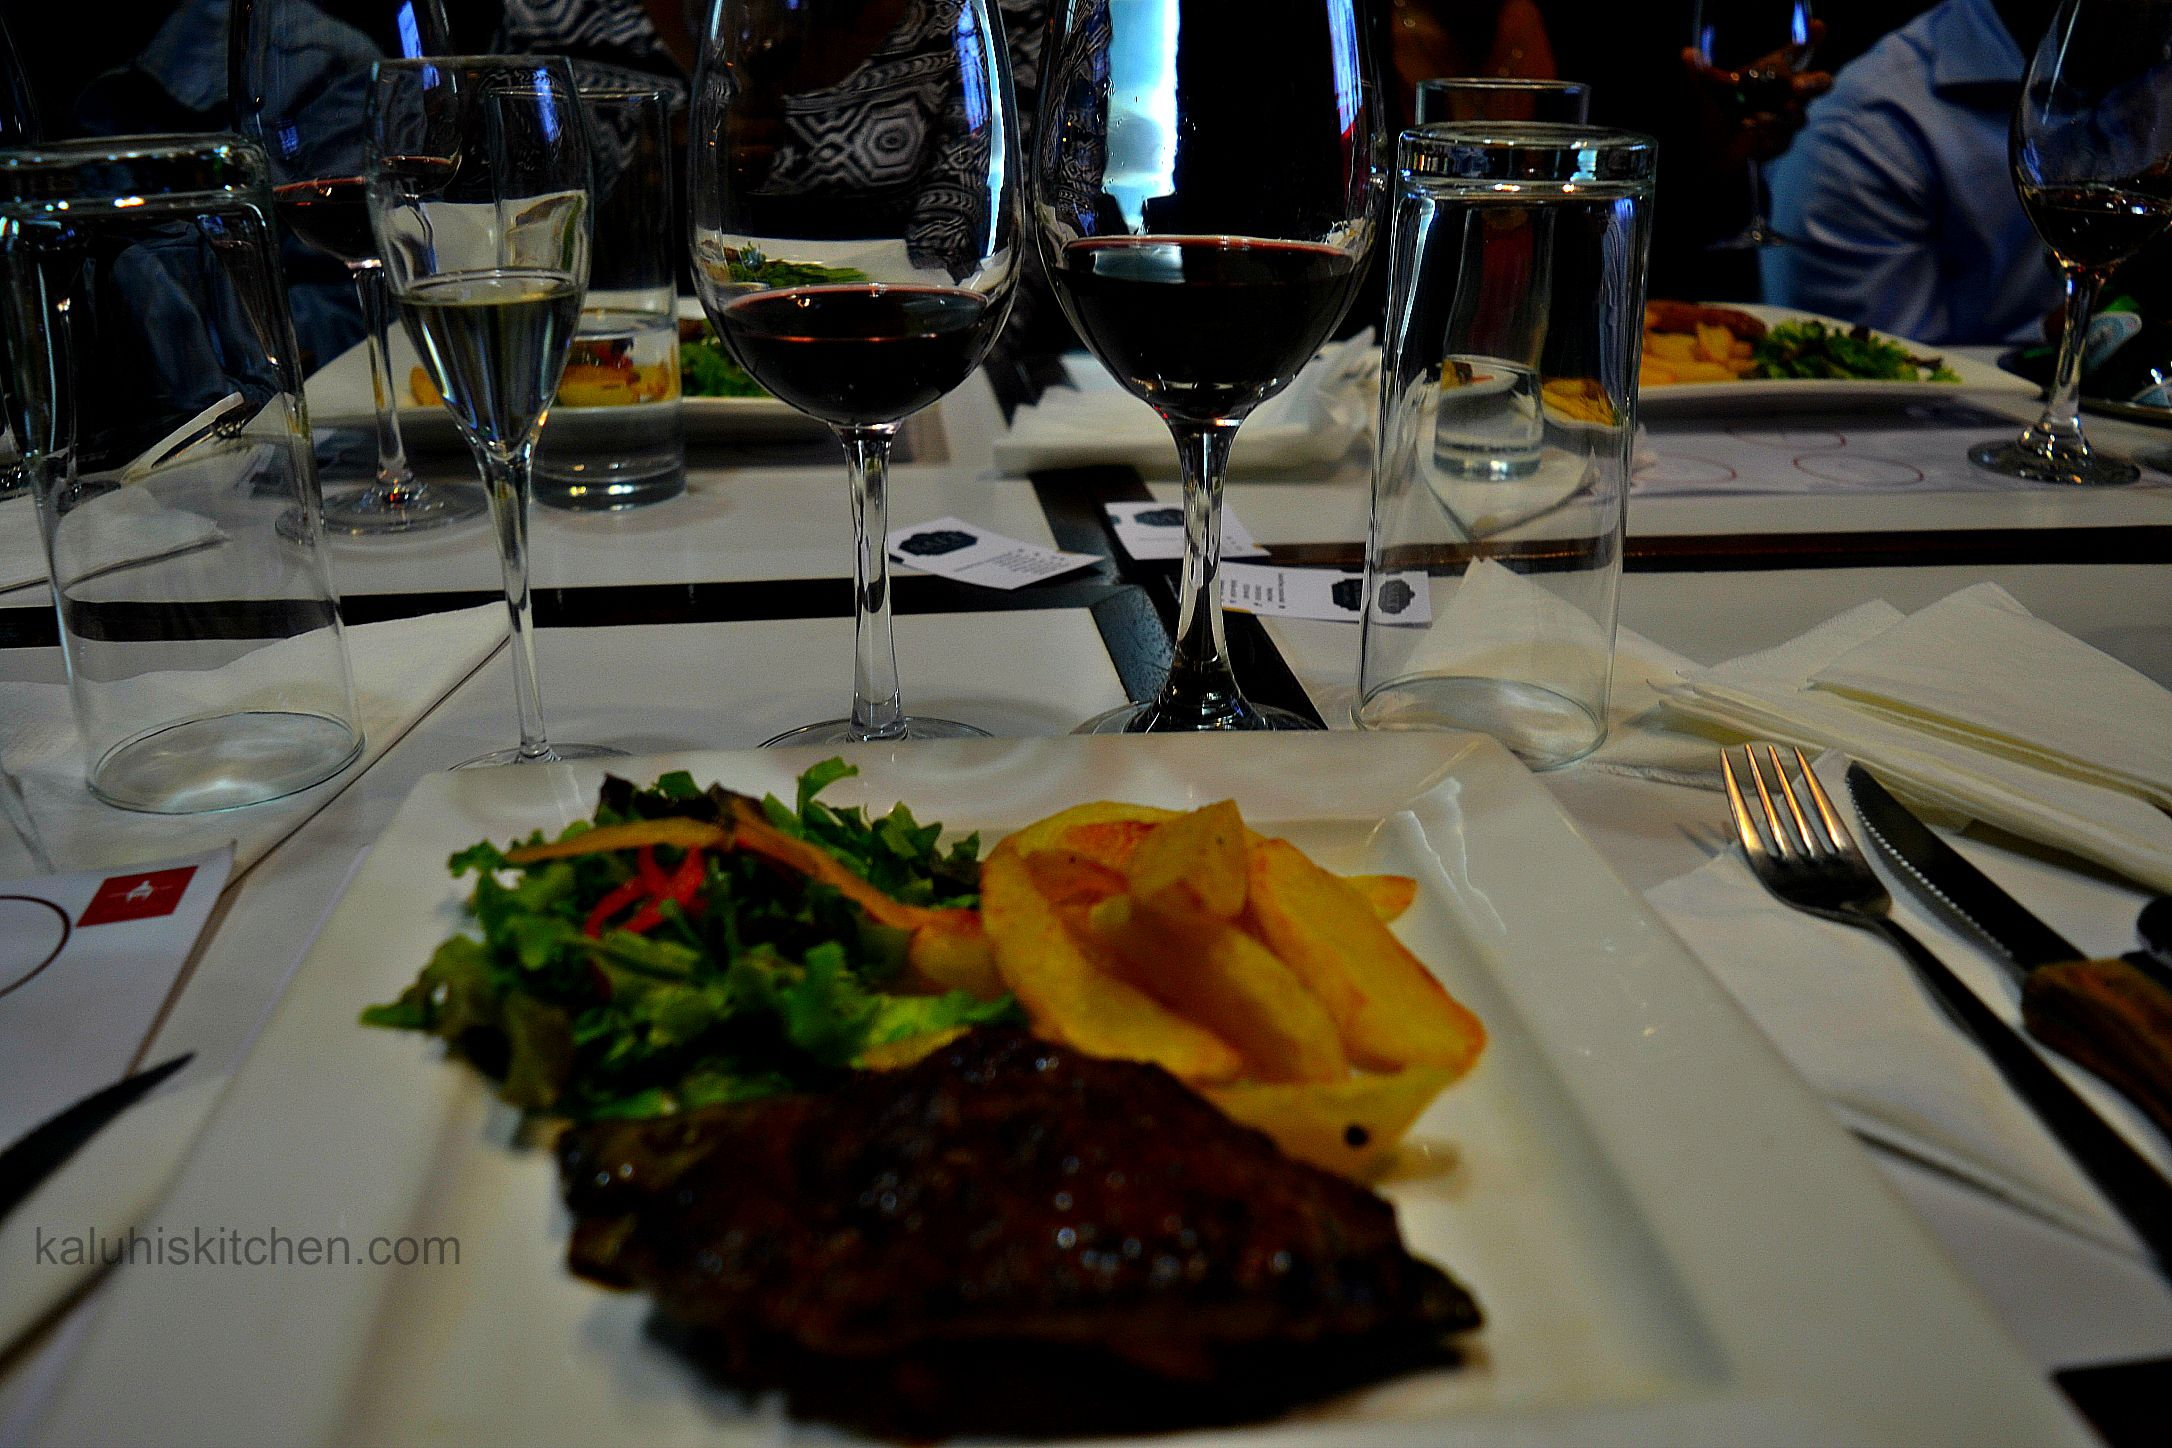 wine at the salt bar and grill served with their phenomenal juicy steak with fries and a vinegrette salad